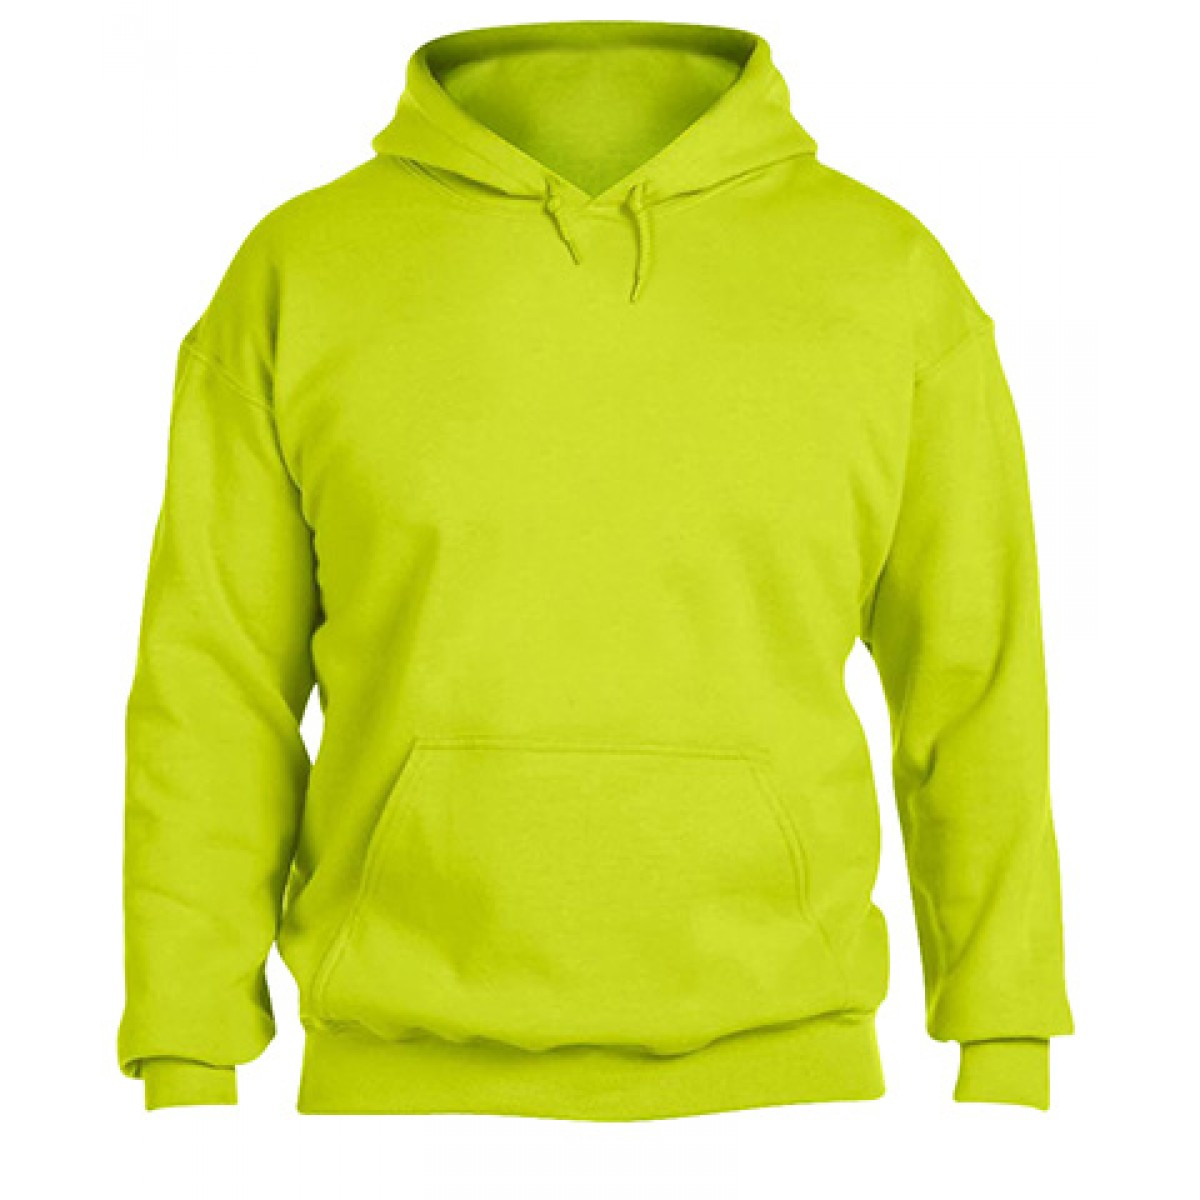 Hooded Sweatshirt 50/50 Heavy Blend-Safety Green-XS